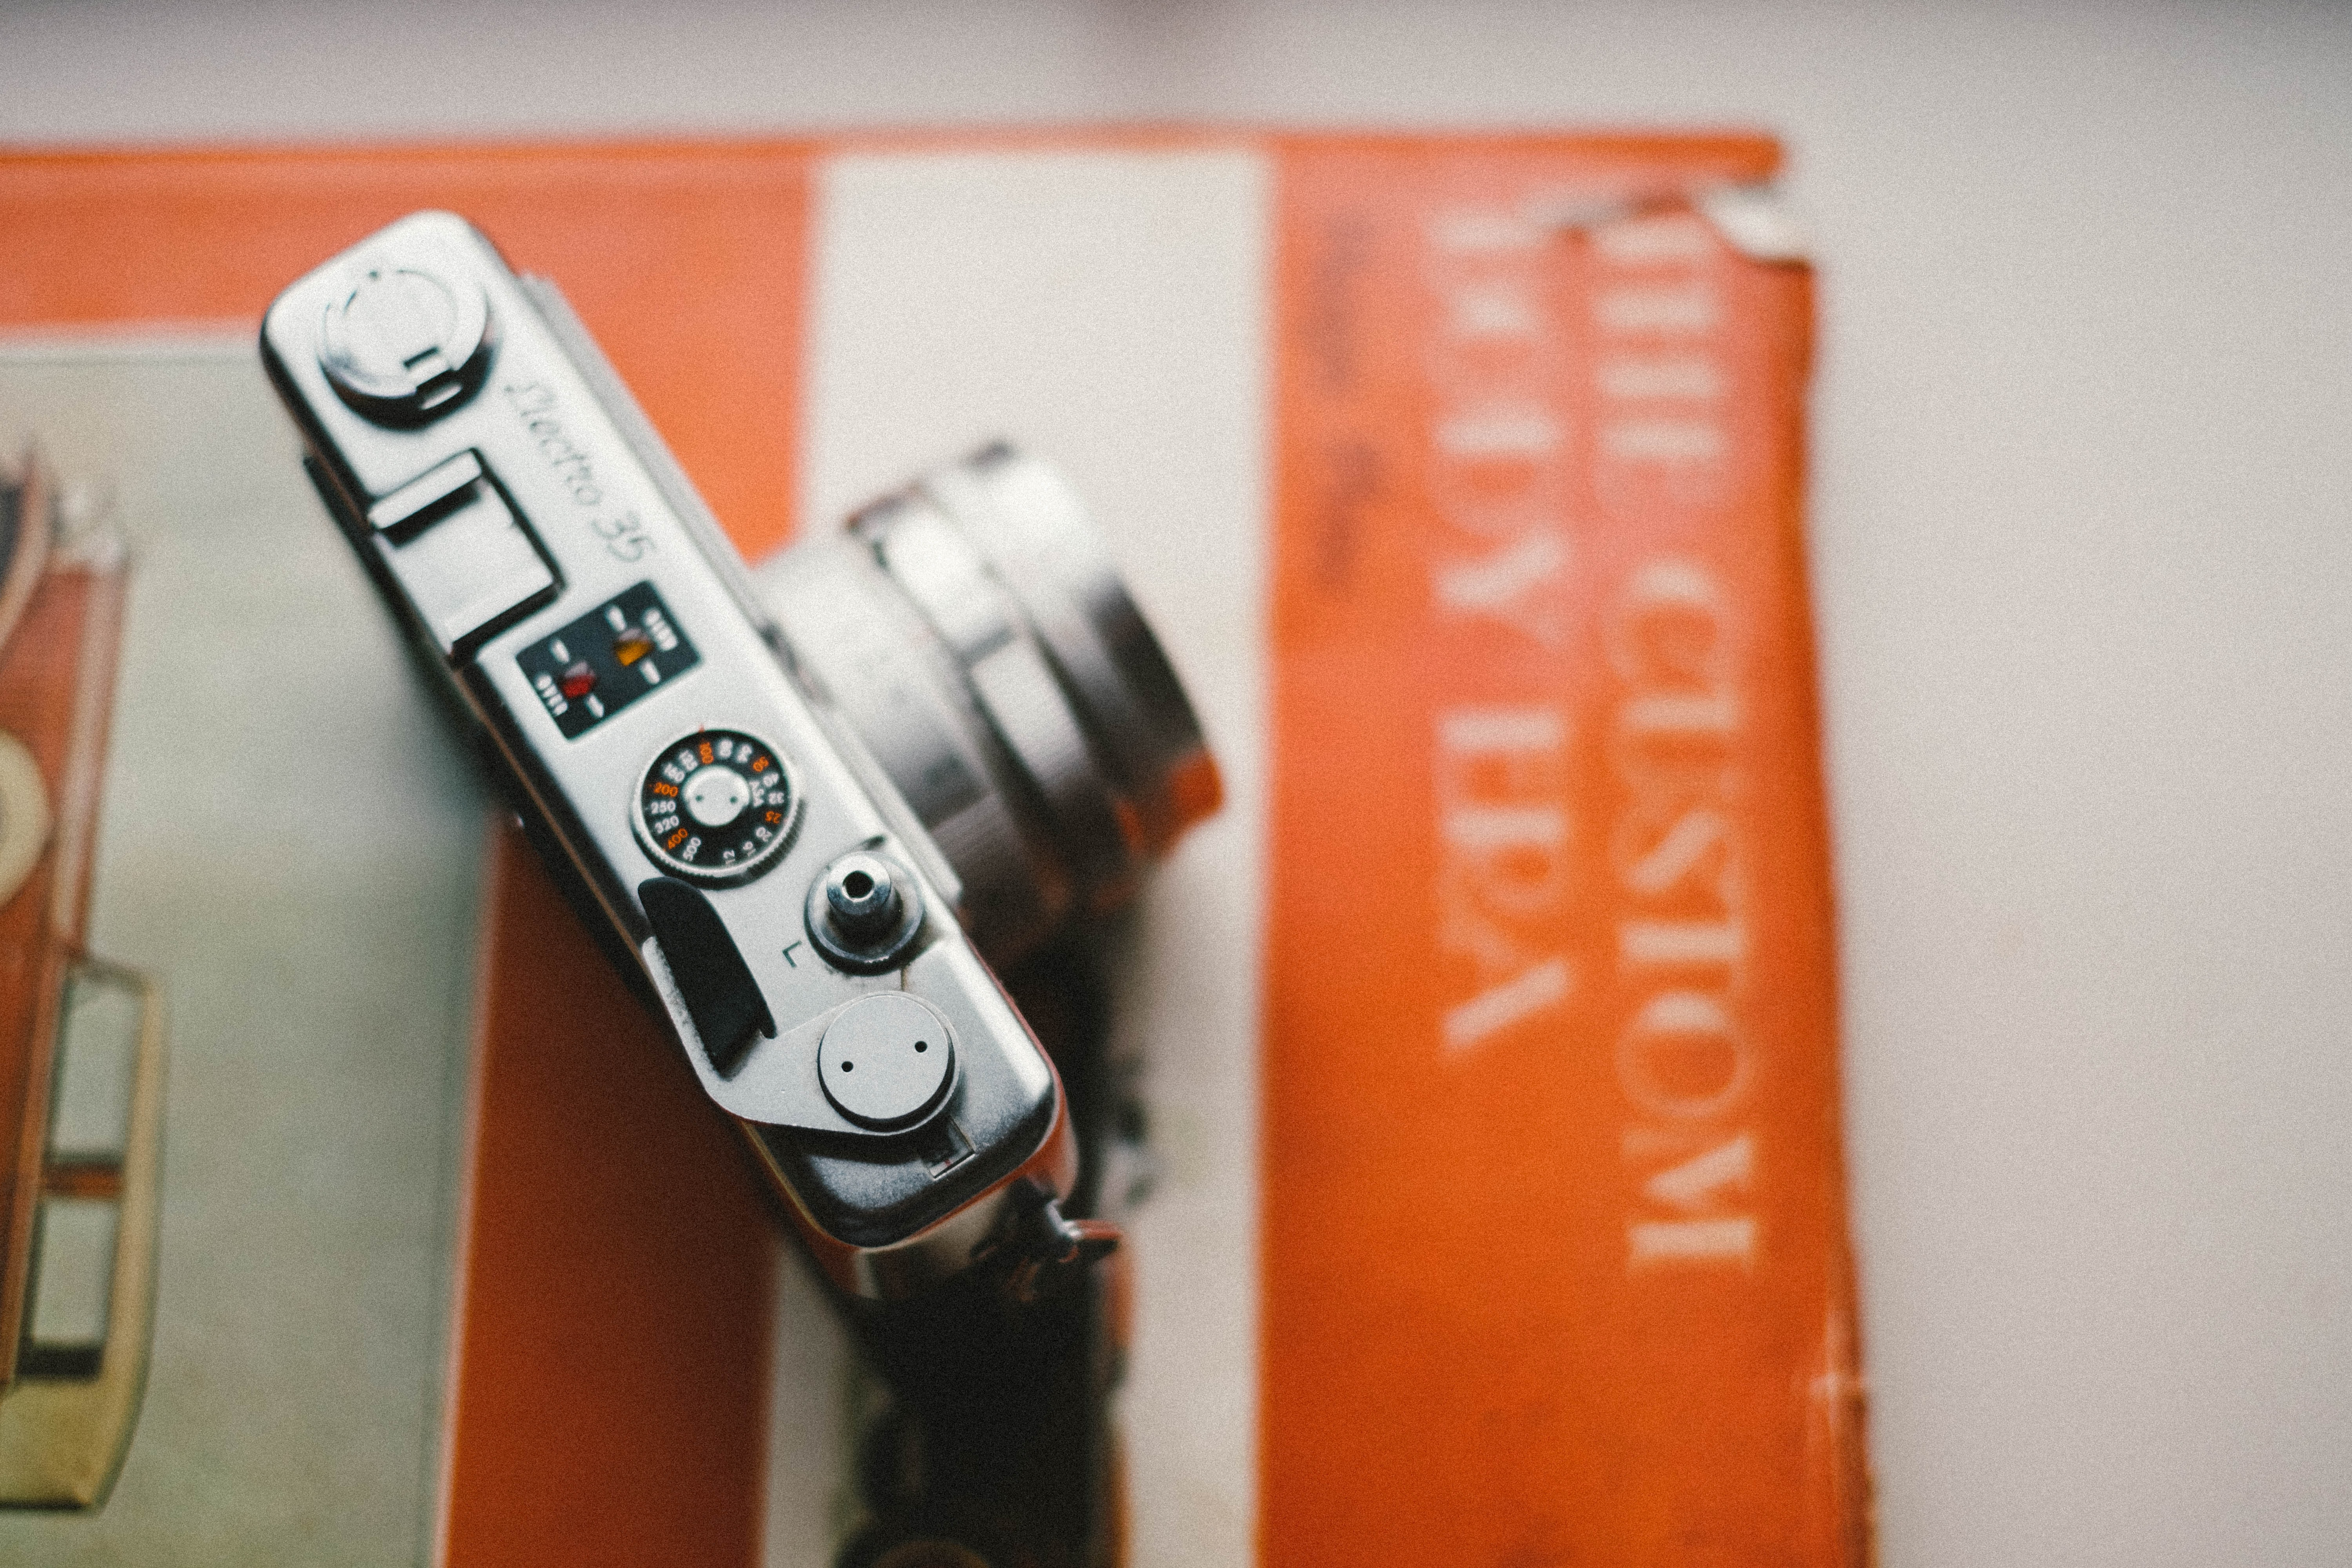 Looking down on a camera that sits atop an orange vintage book